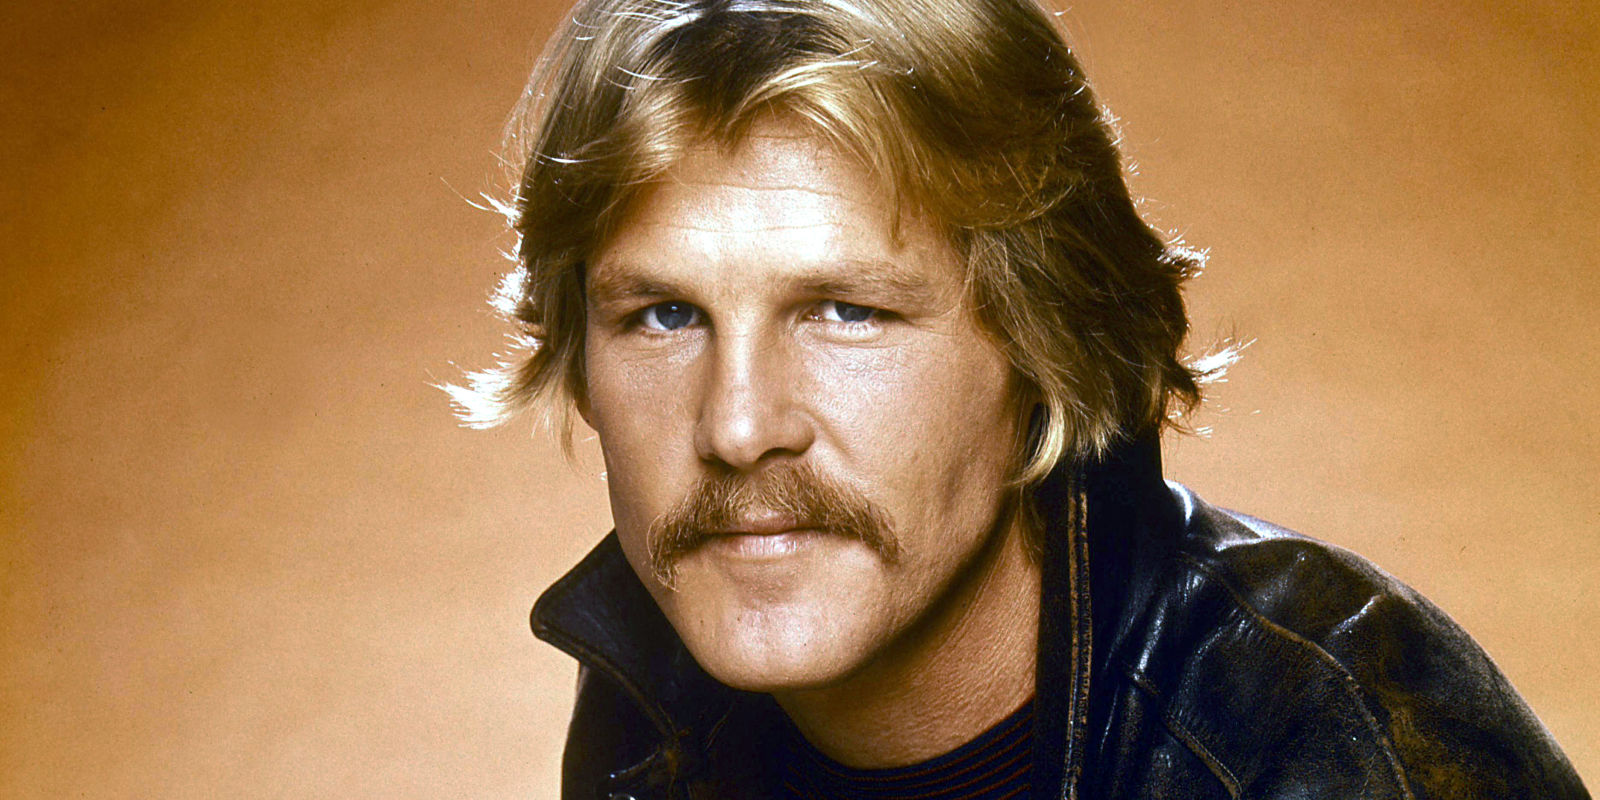 Nick Nolte wallpapers, Celebrity, HQ Nick Nolte pictures | 4K Wallpapers 2019